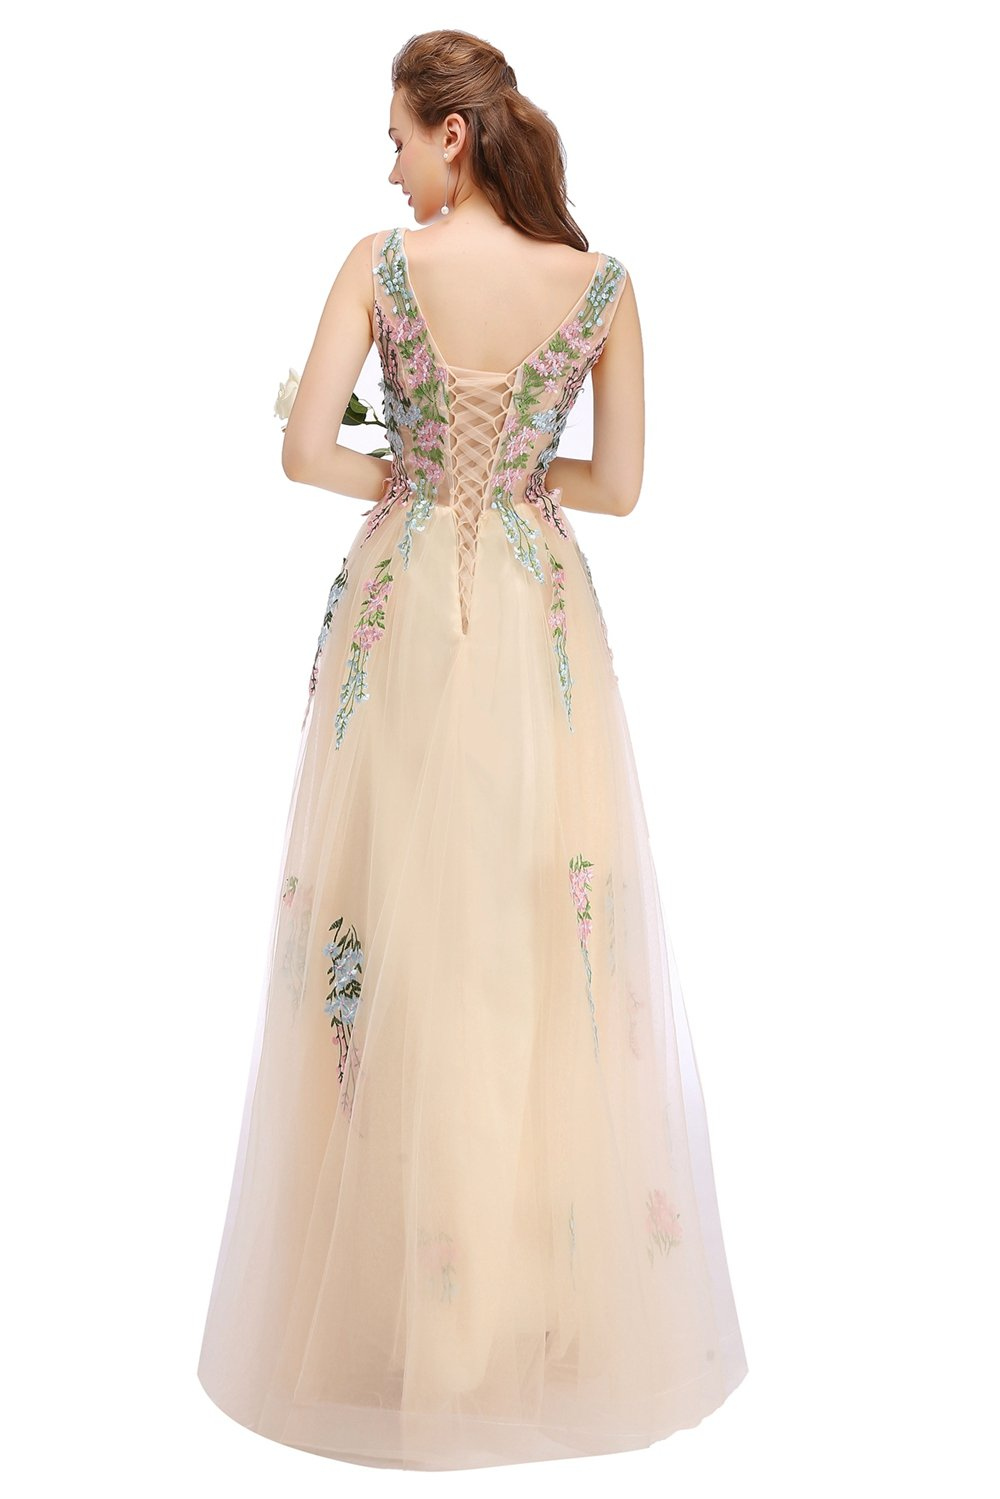 New Champagne Lace Embroidery Long Evening Dress The Bride Banquet Elegant Sleeveless Floor-length Prom Party Gowns-Dress-SheSimplyShops